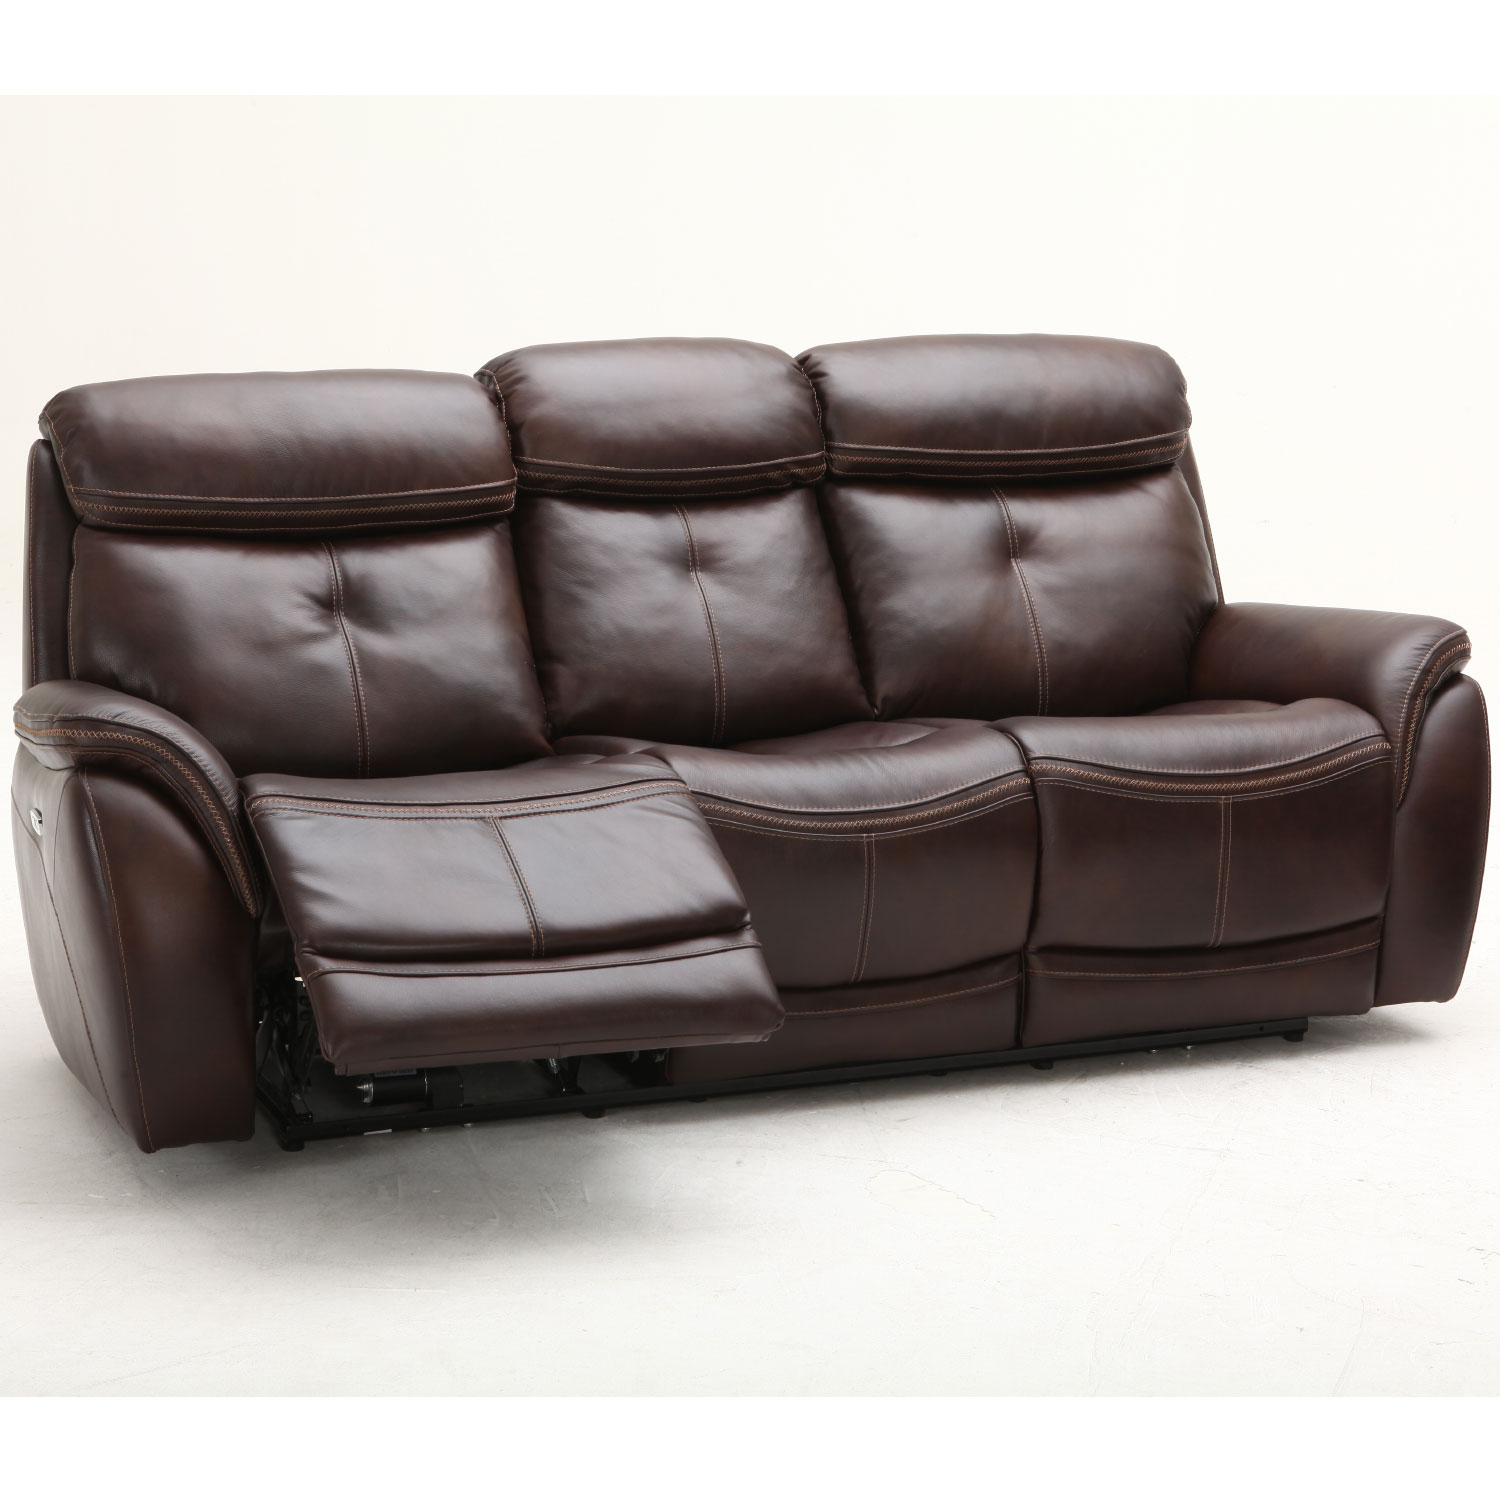 Pleasant Homerun Reclining Sofa W Power Headrest In Brown Top Grain Leather By Southern Motion Download Free Architecture Designs Xoliawazosbritishbridgeorg